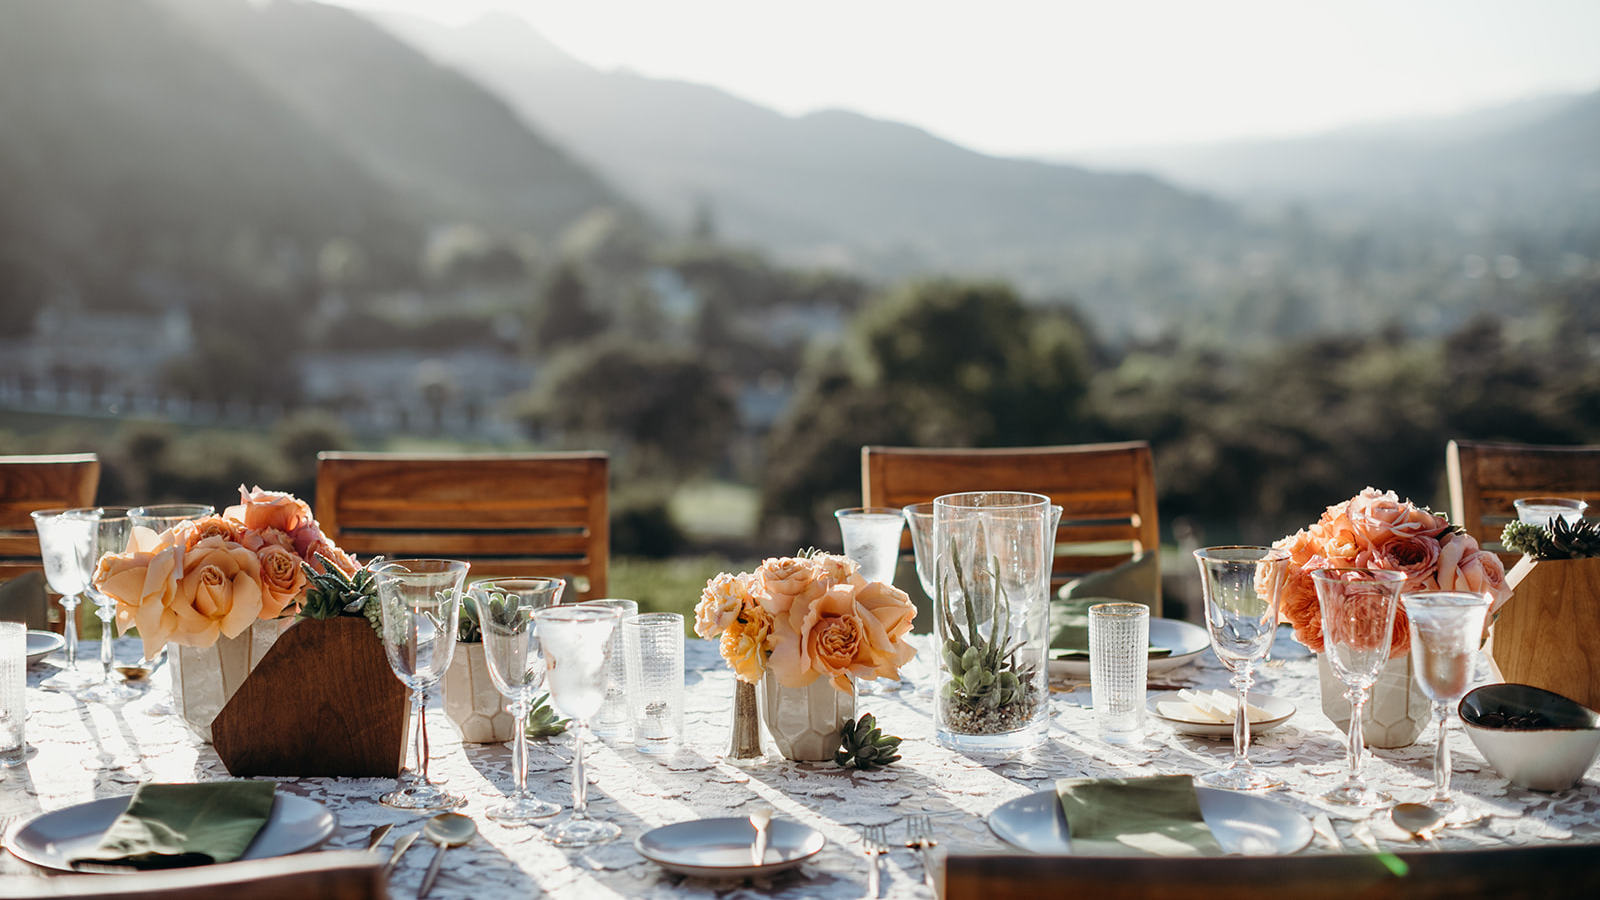 Carmel Valley Ranch_Weddings_Events_Harvest Landing_107_Katie Edwards